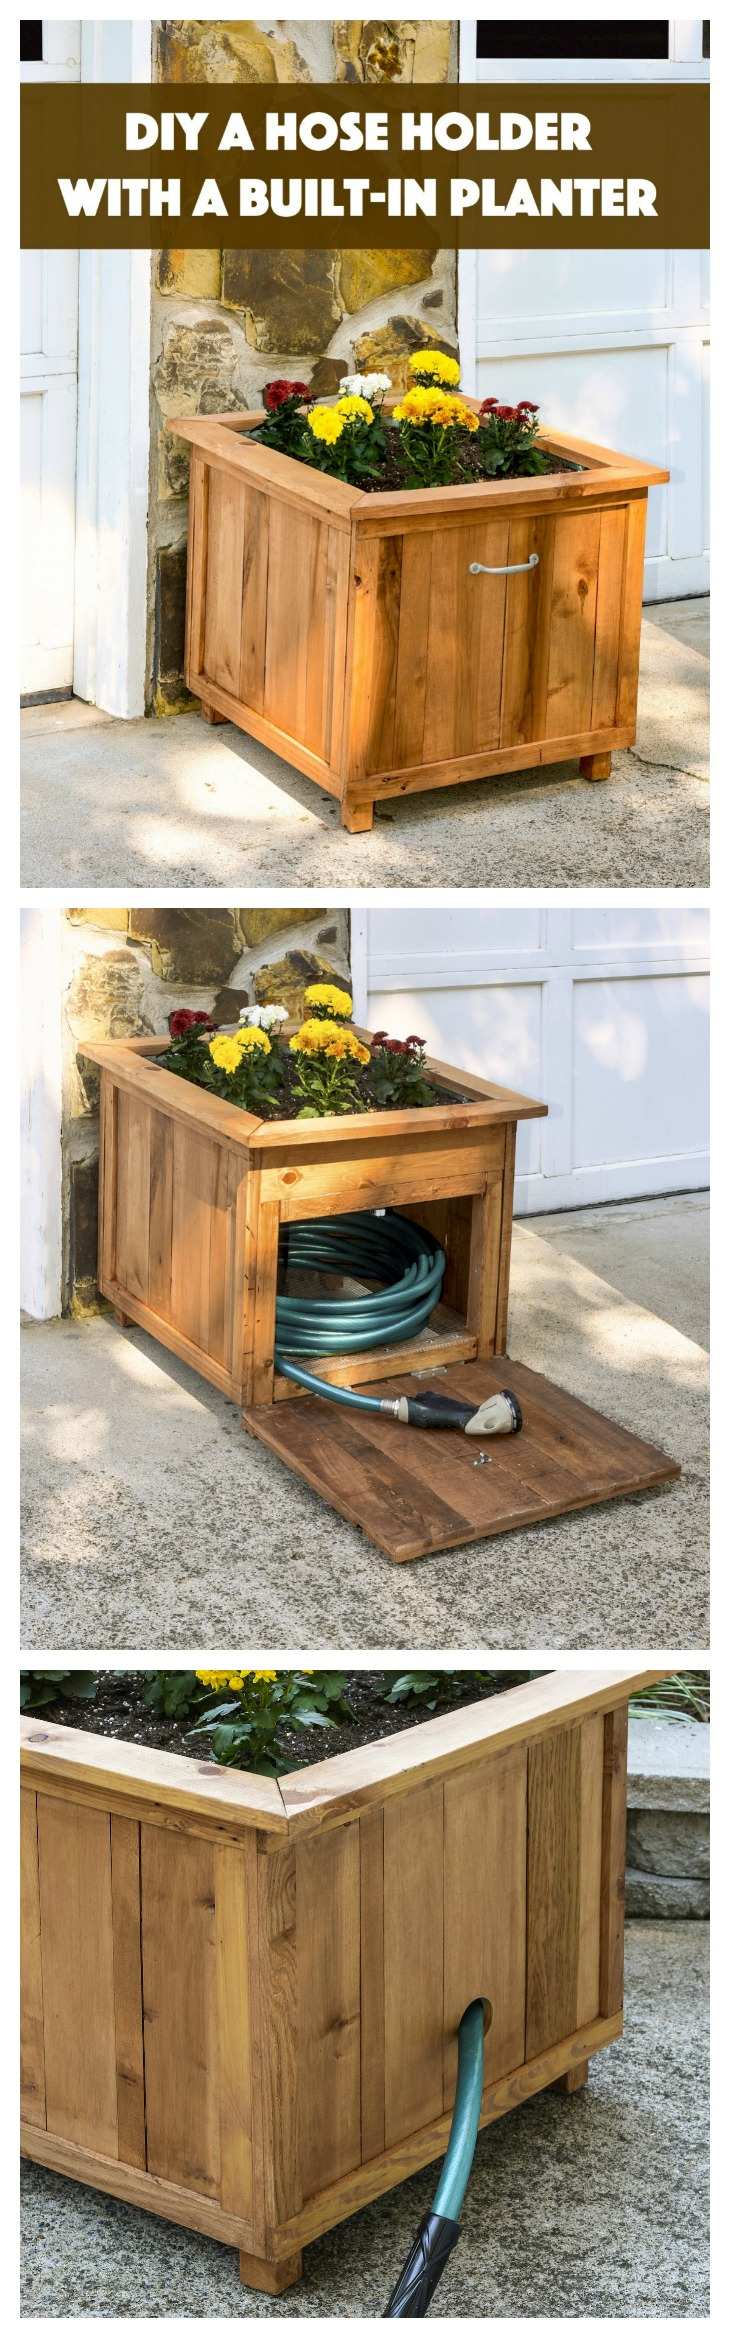 Diy hose hiding outdoor planter an easy project for for Diy garden hose storage